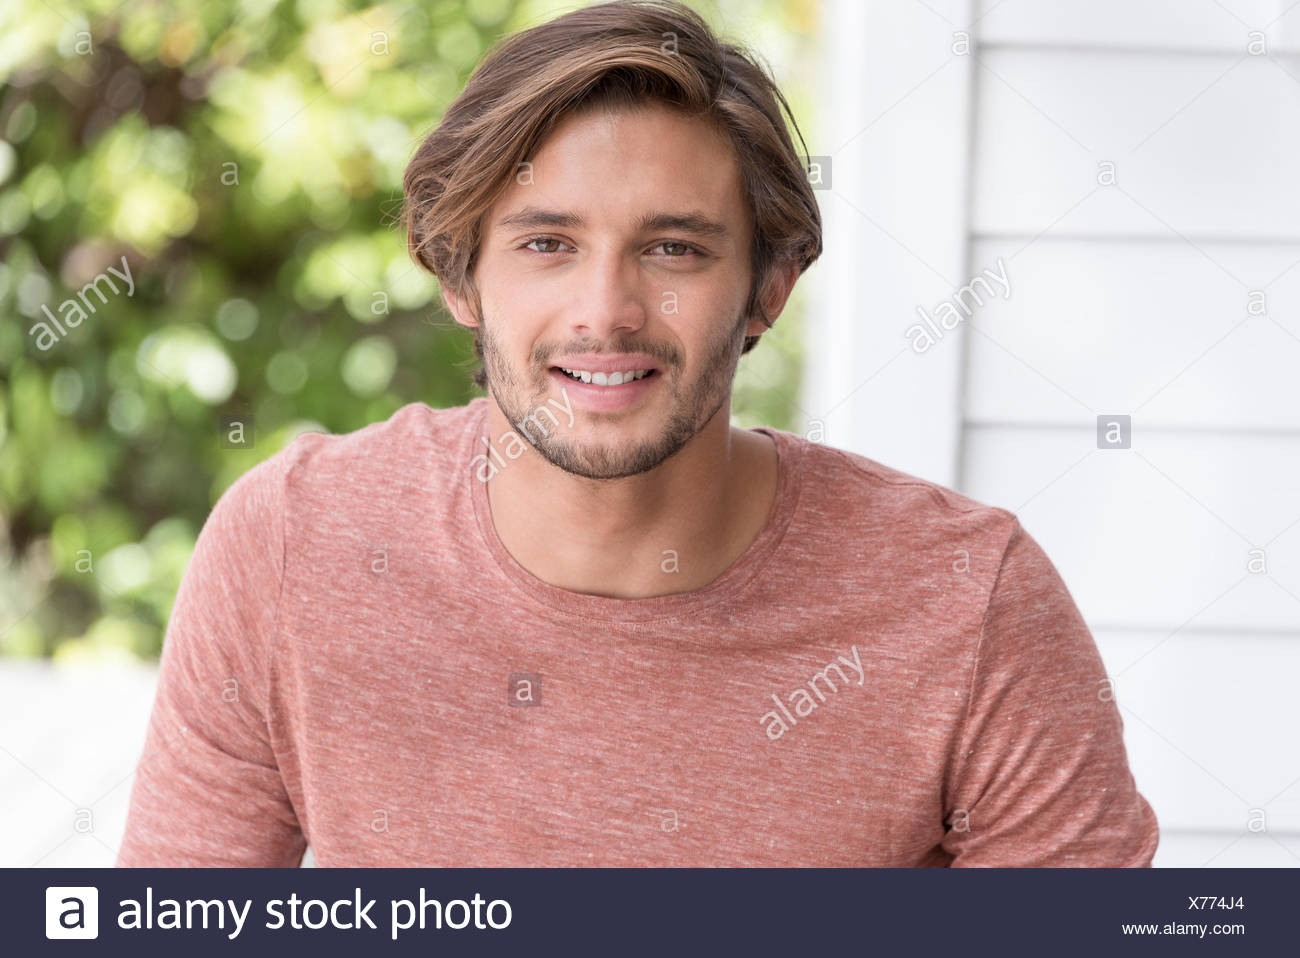 Portrait of a happy young man smiling Stock Photo